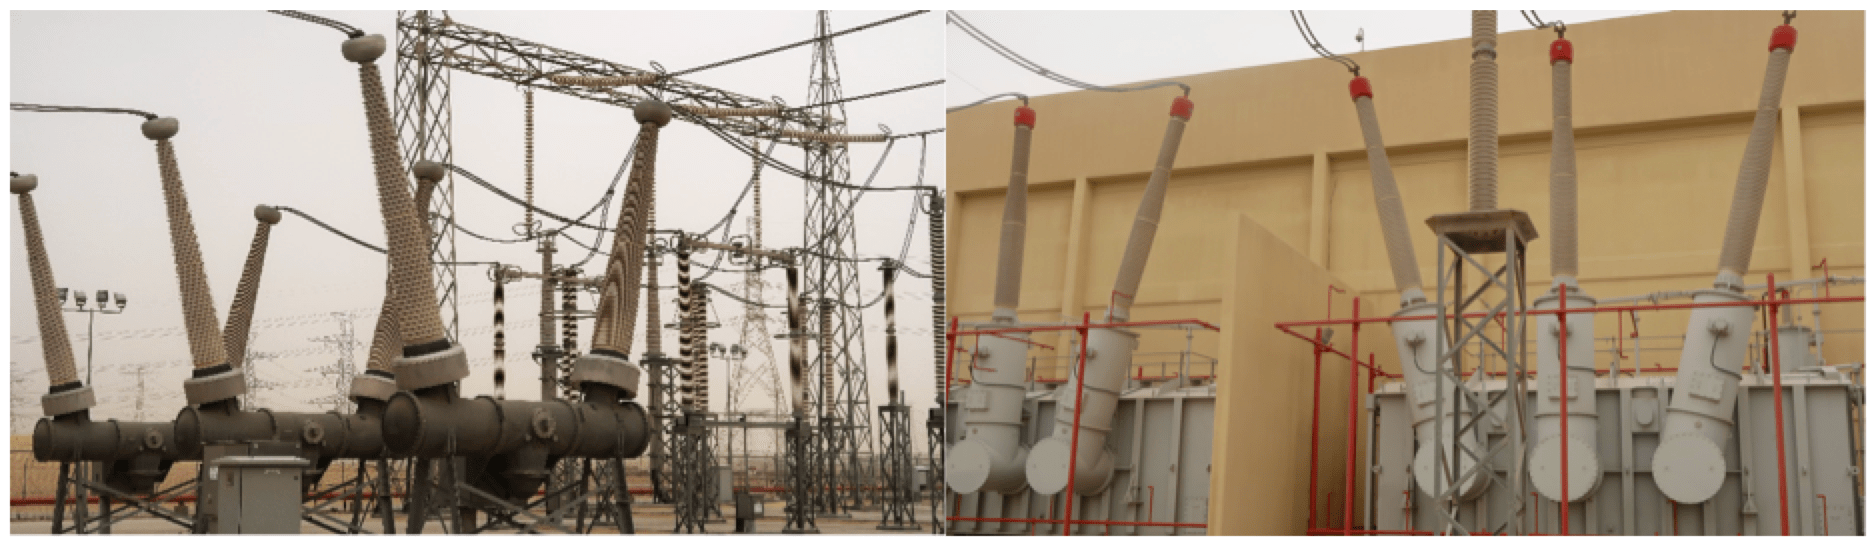 Station high voltage insulator coating with RTV at Al Fadhili back-to-back converter station.